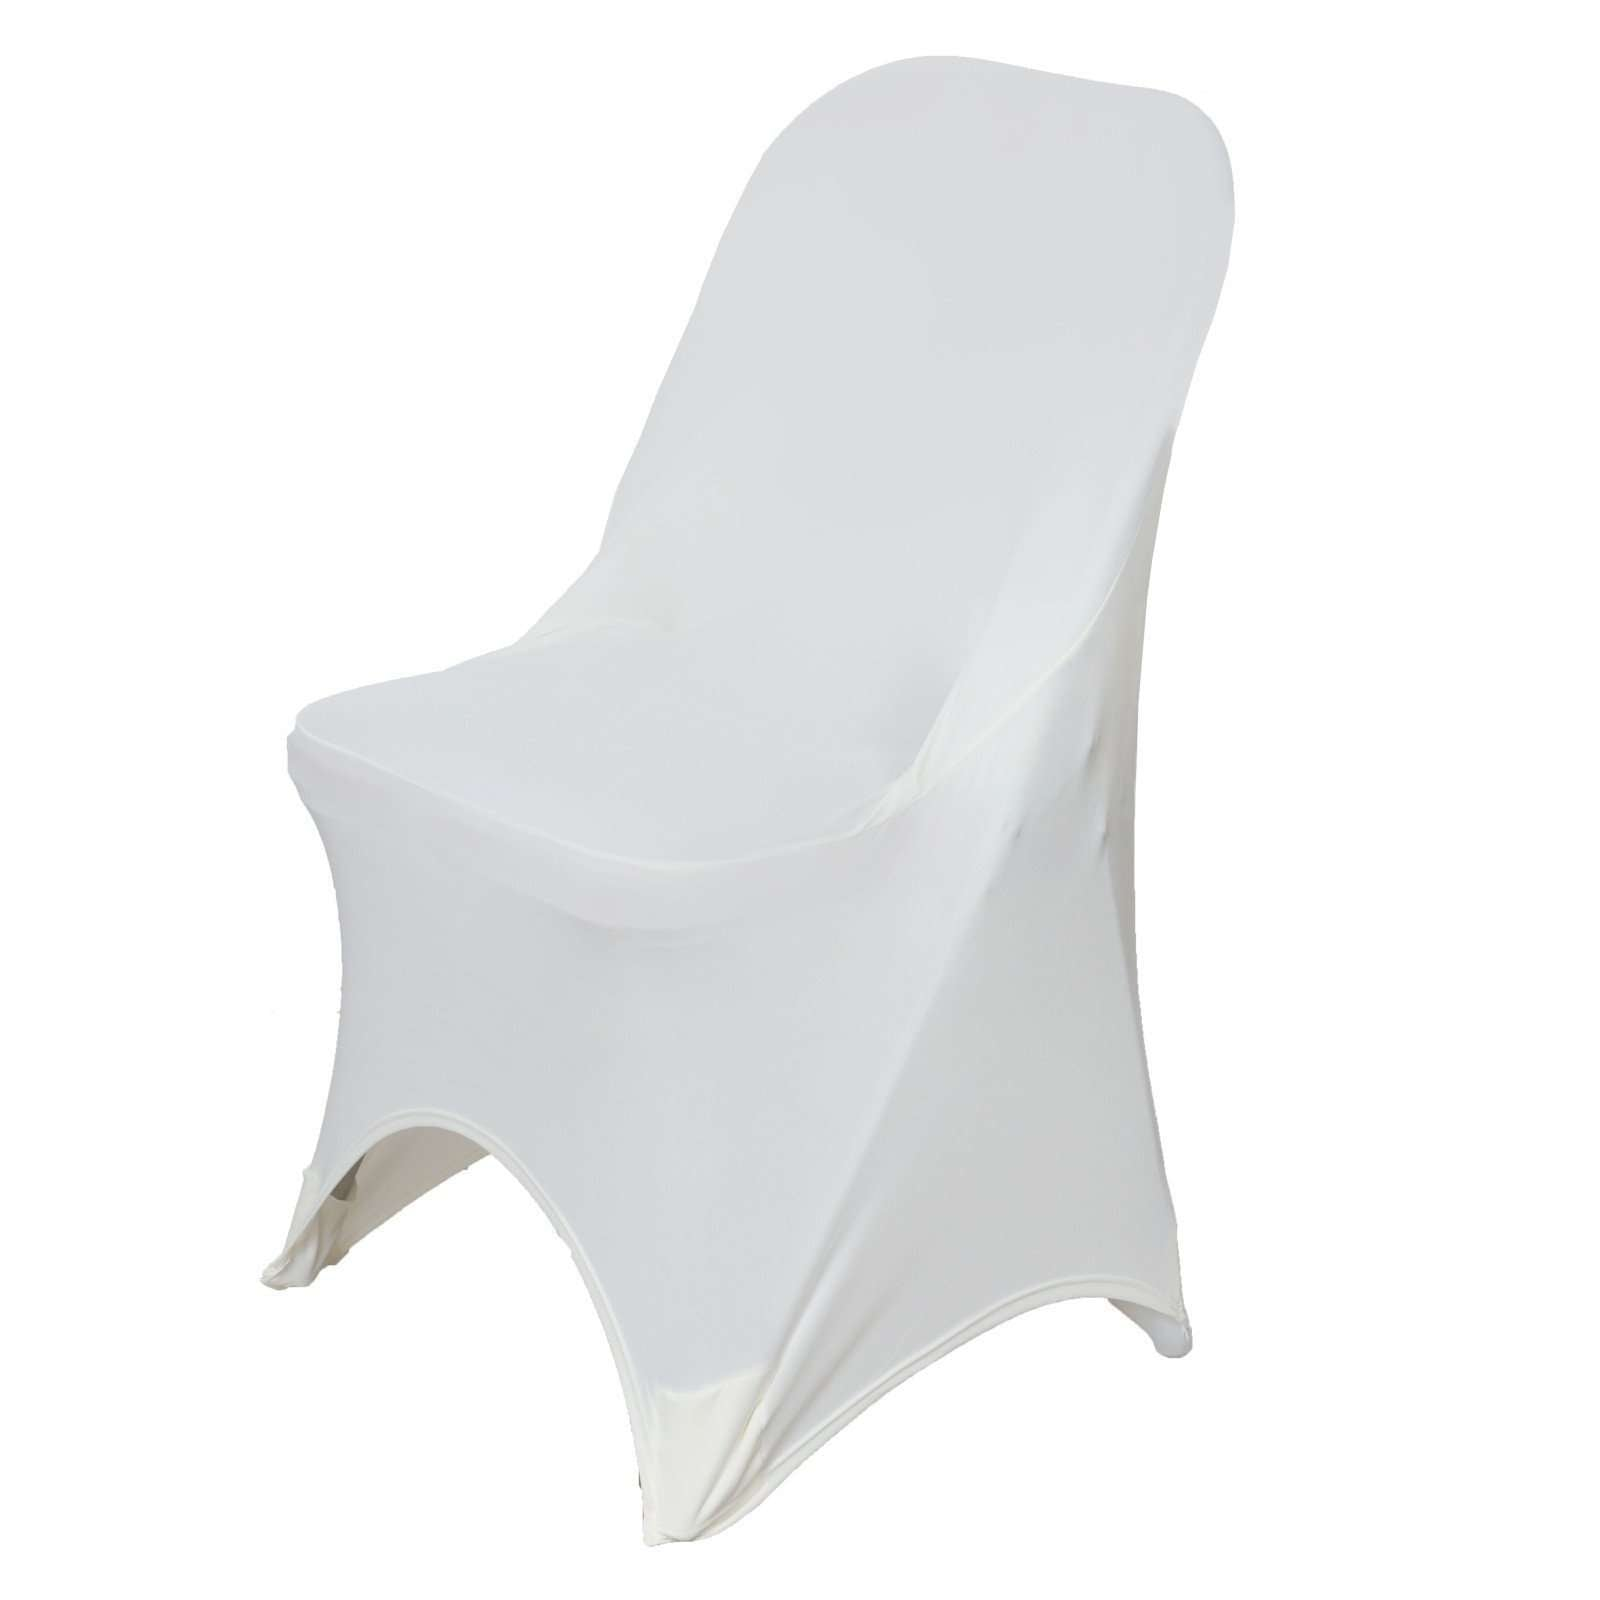 Wondrous Wholesale Ivory Spandex Stretch Folding Chair Cover Wedding Party Event Chaircoverfactory Bralicious Painted Fabric Chair Ideas Braliciousco